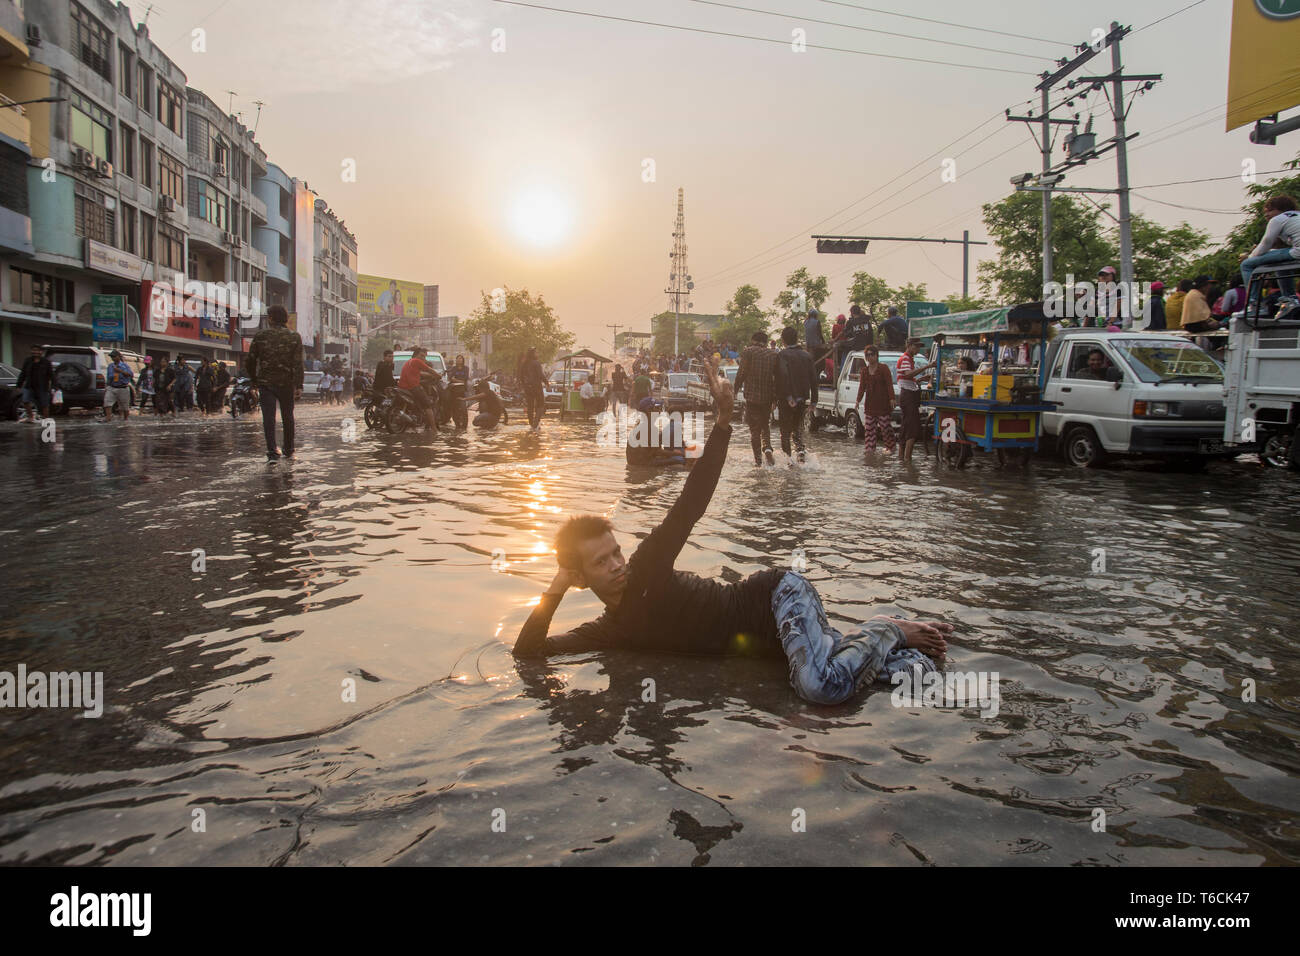 Reveller laying in a flooded street in Mandalay during the water festival of the Thingyan New Year Festival in Myanmar. - Stock Image